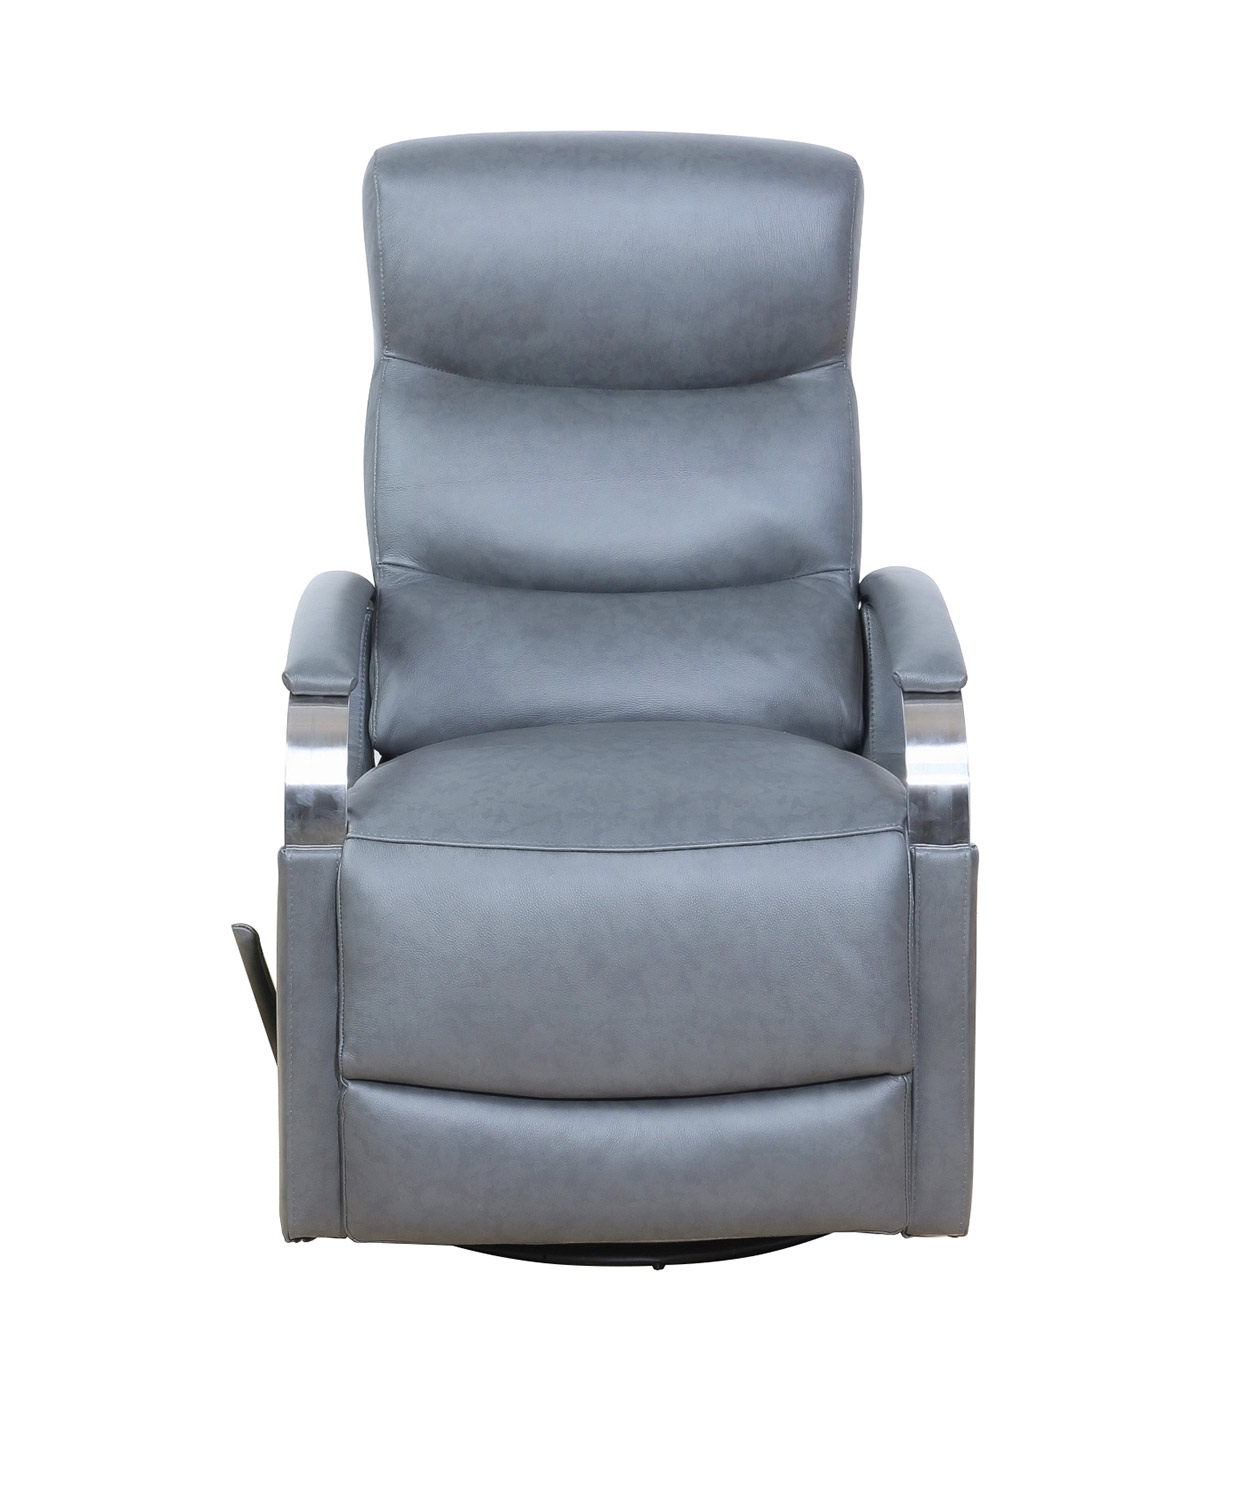 Barcalounger Shadow Swivel Glider Recliner Chair Toby